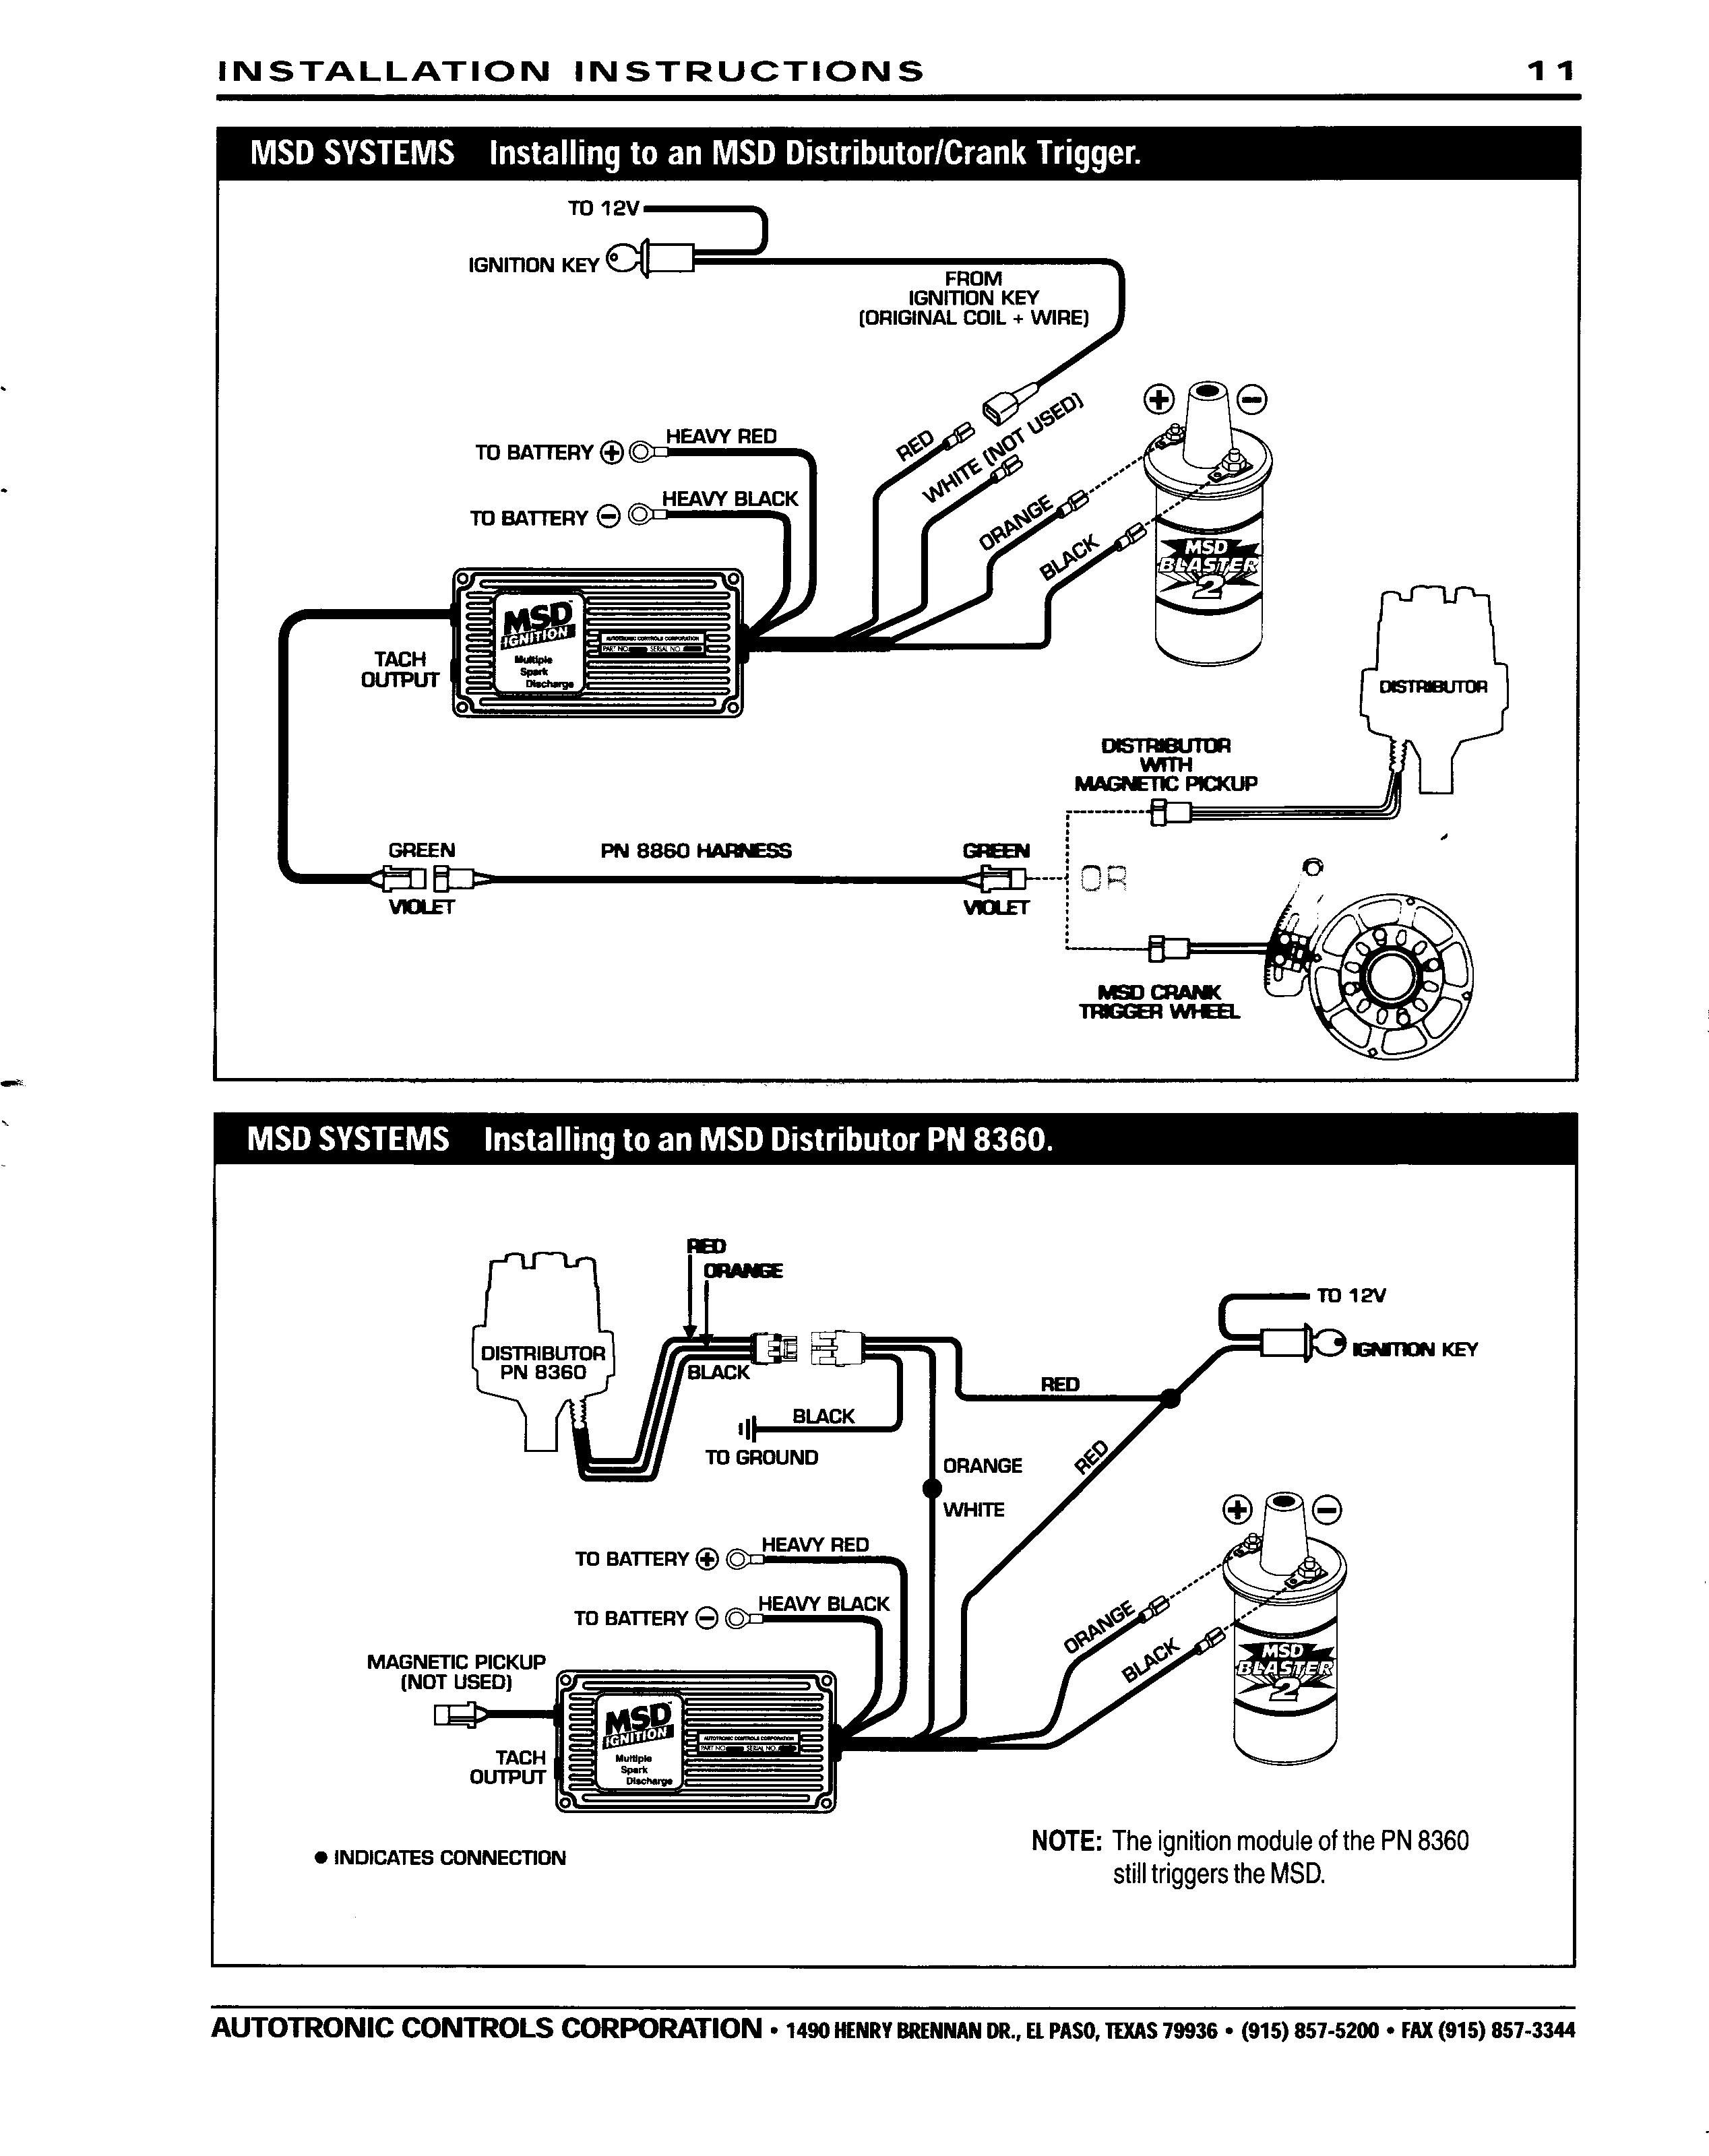 msd ignition wiring diagram diagrams schematics with mallory unilitemsd ignition wiring diagram diagrams schematics with mallory [ 2536 x 3200 Pixel ]